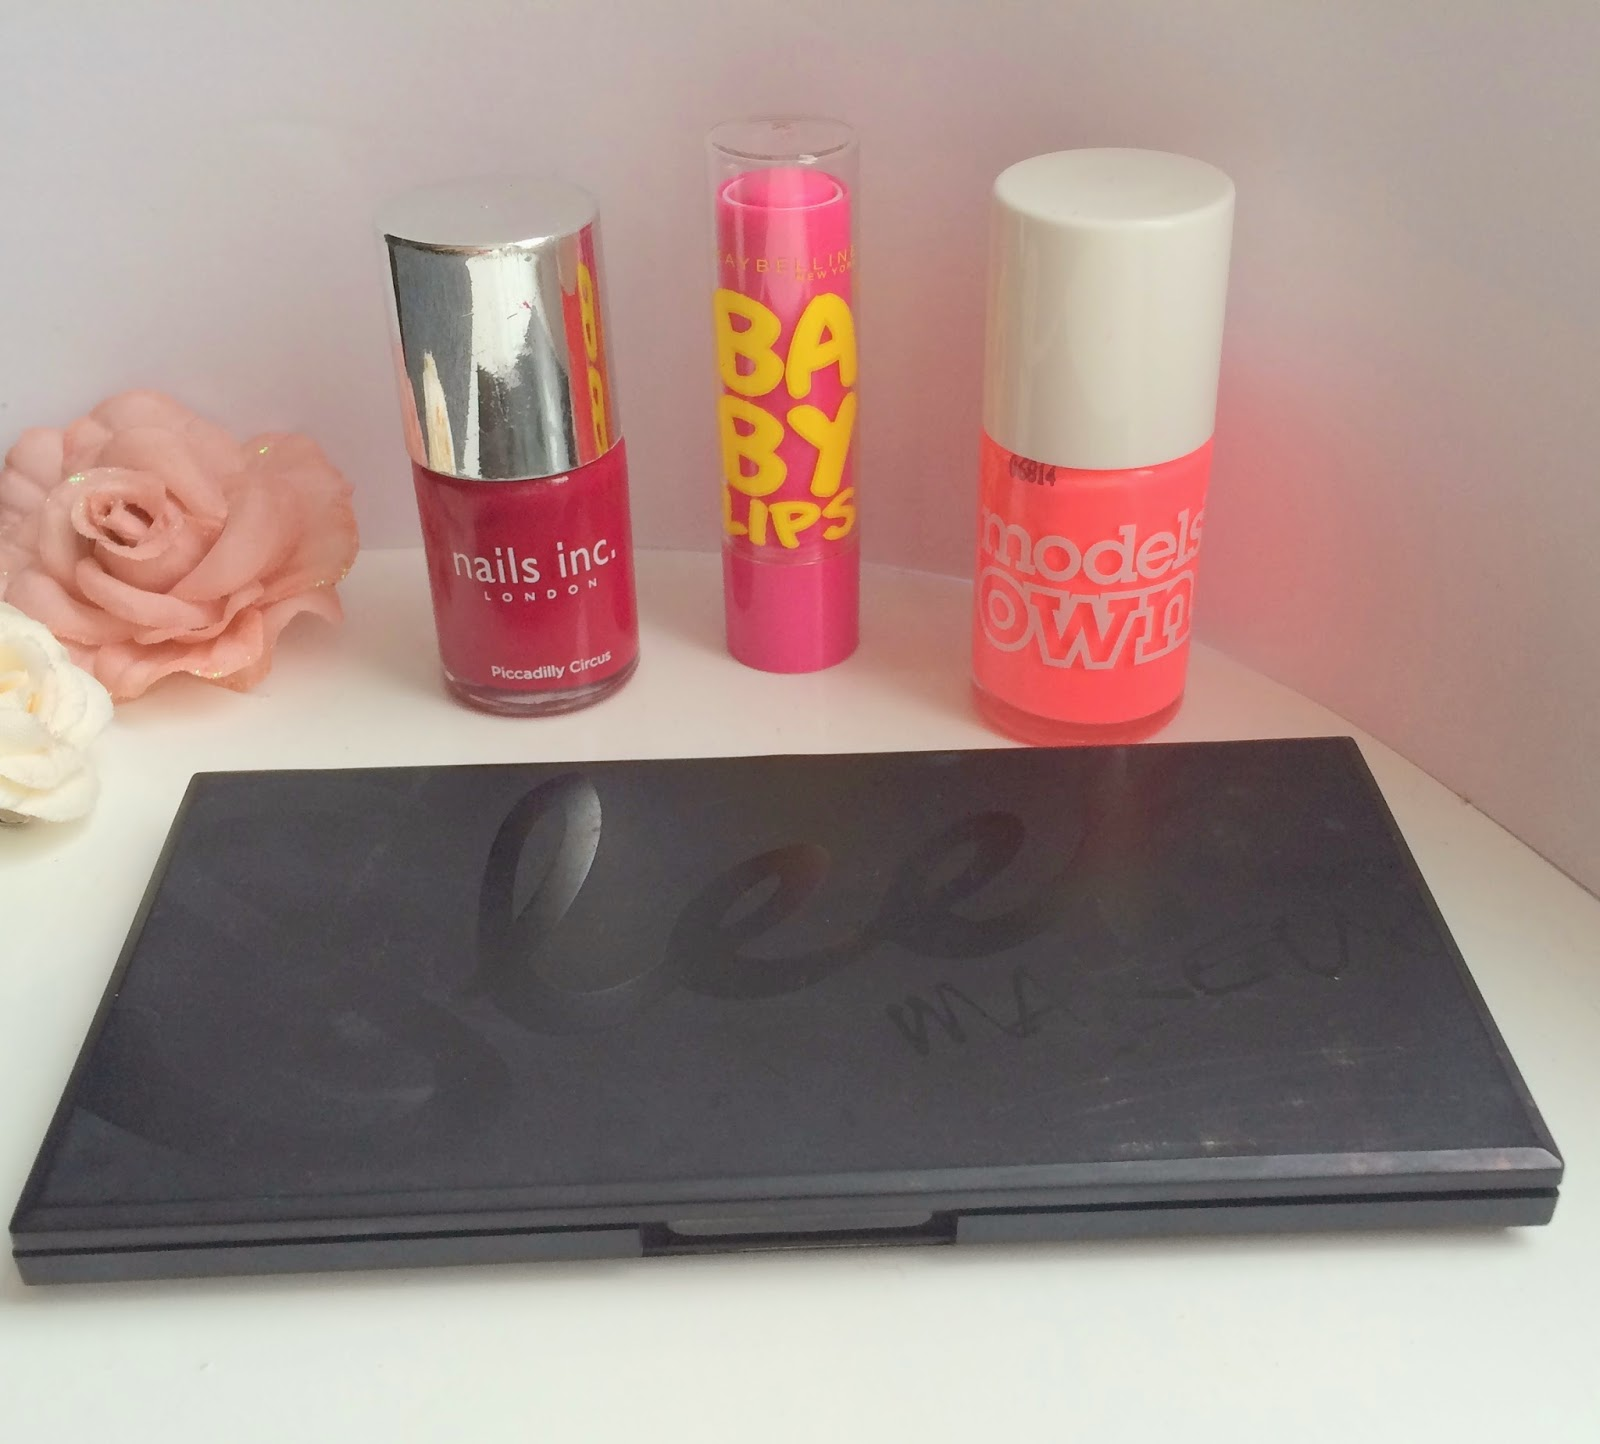 nails-inc-picadilly-babylips-models-own-tans-sleek-storm